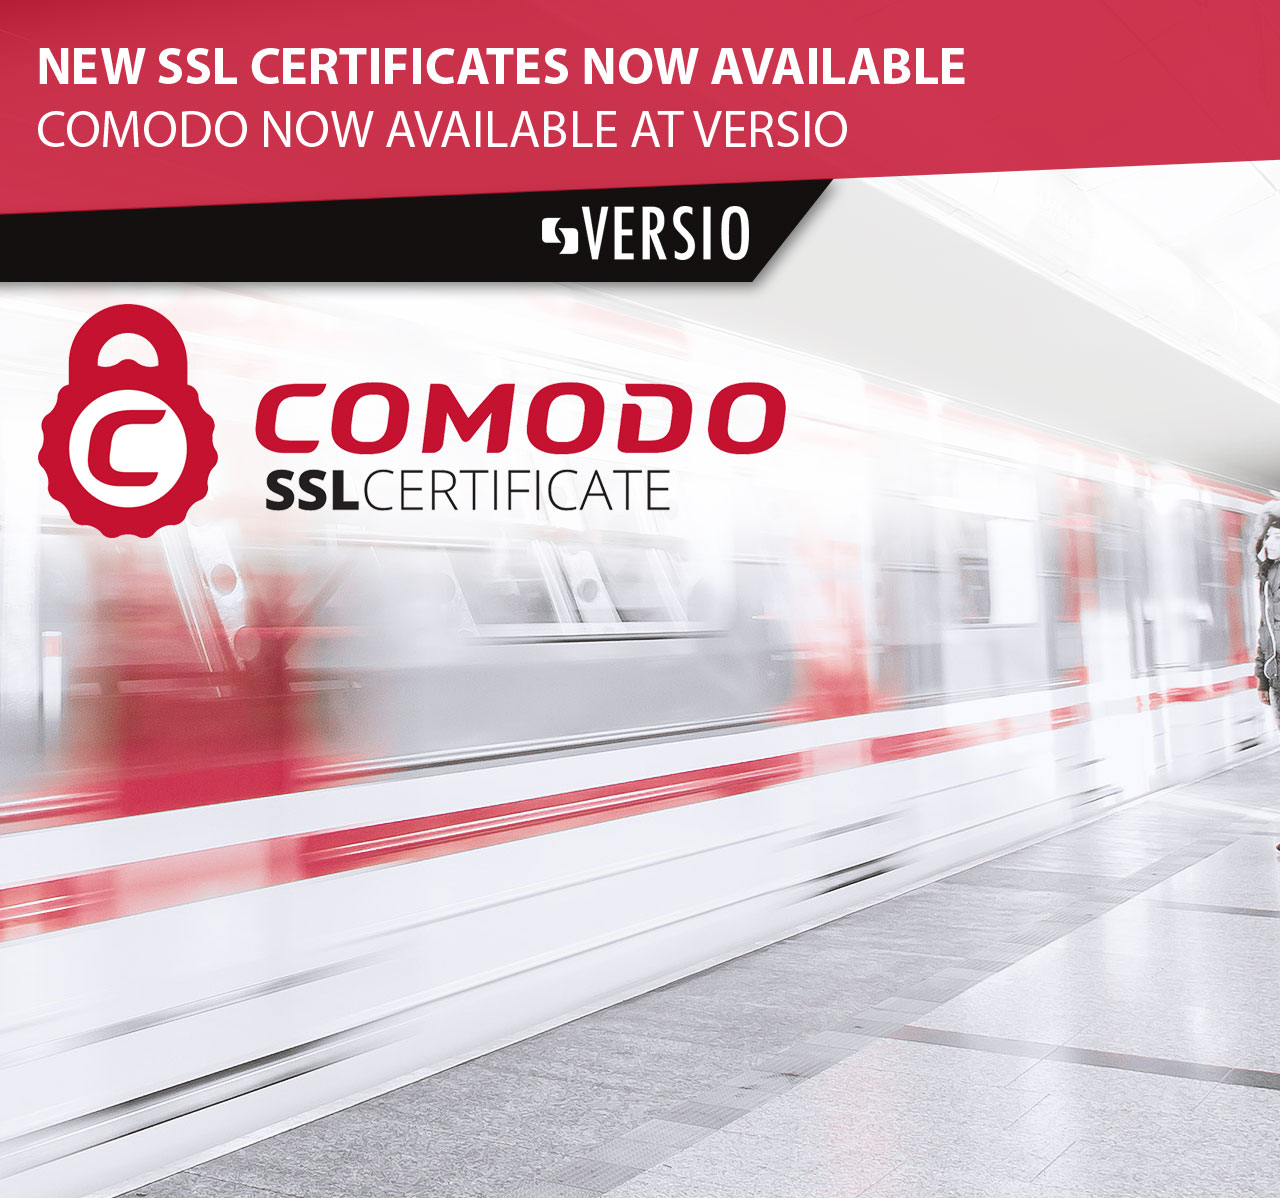 Versio new ssl certificates now available at versio 1betcityfo Image collections